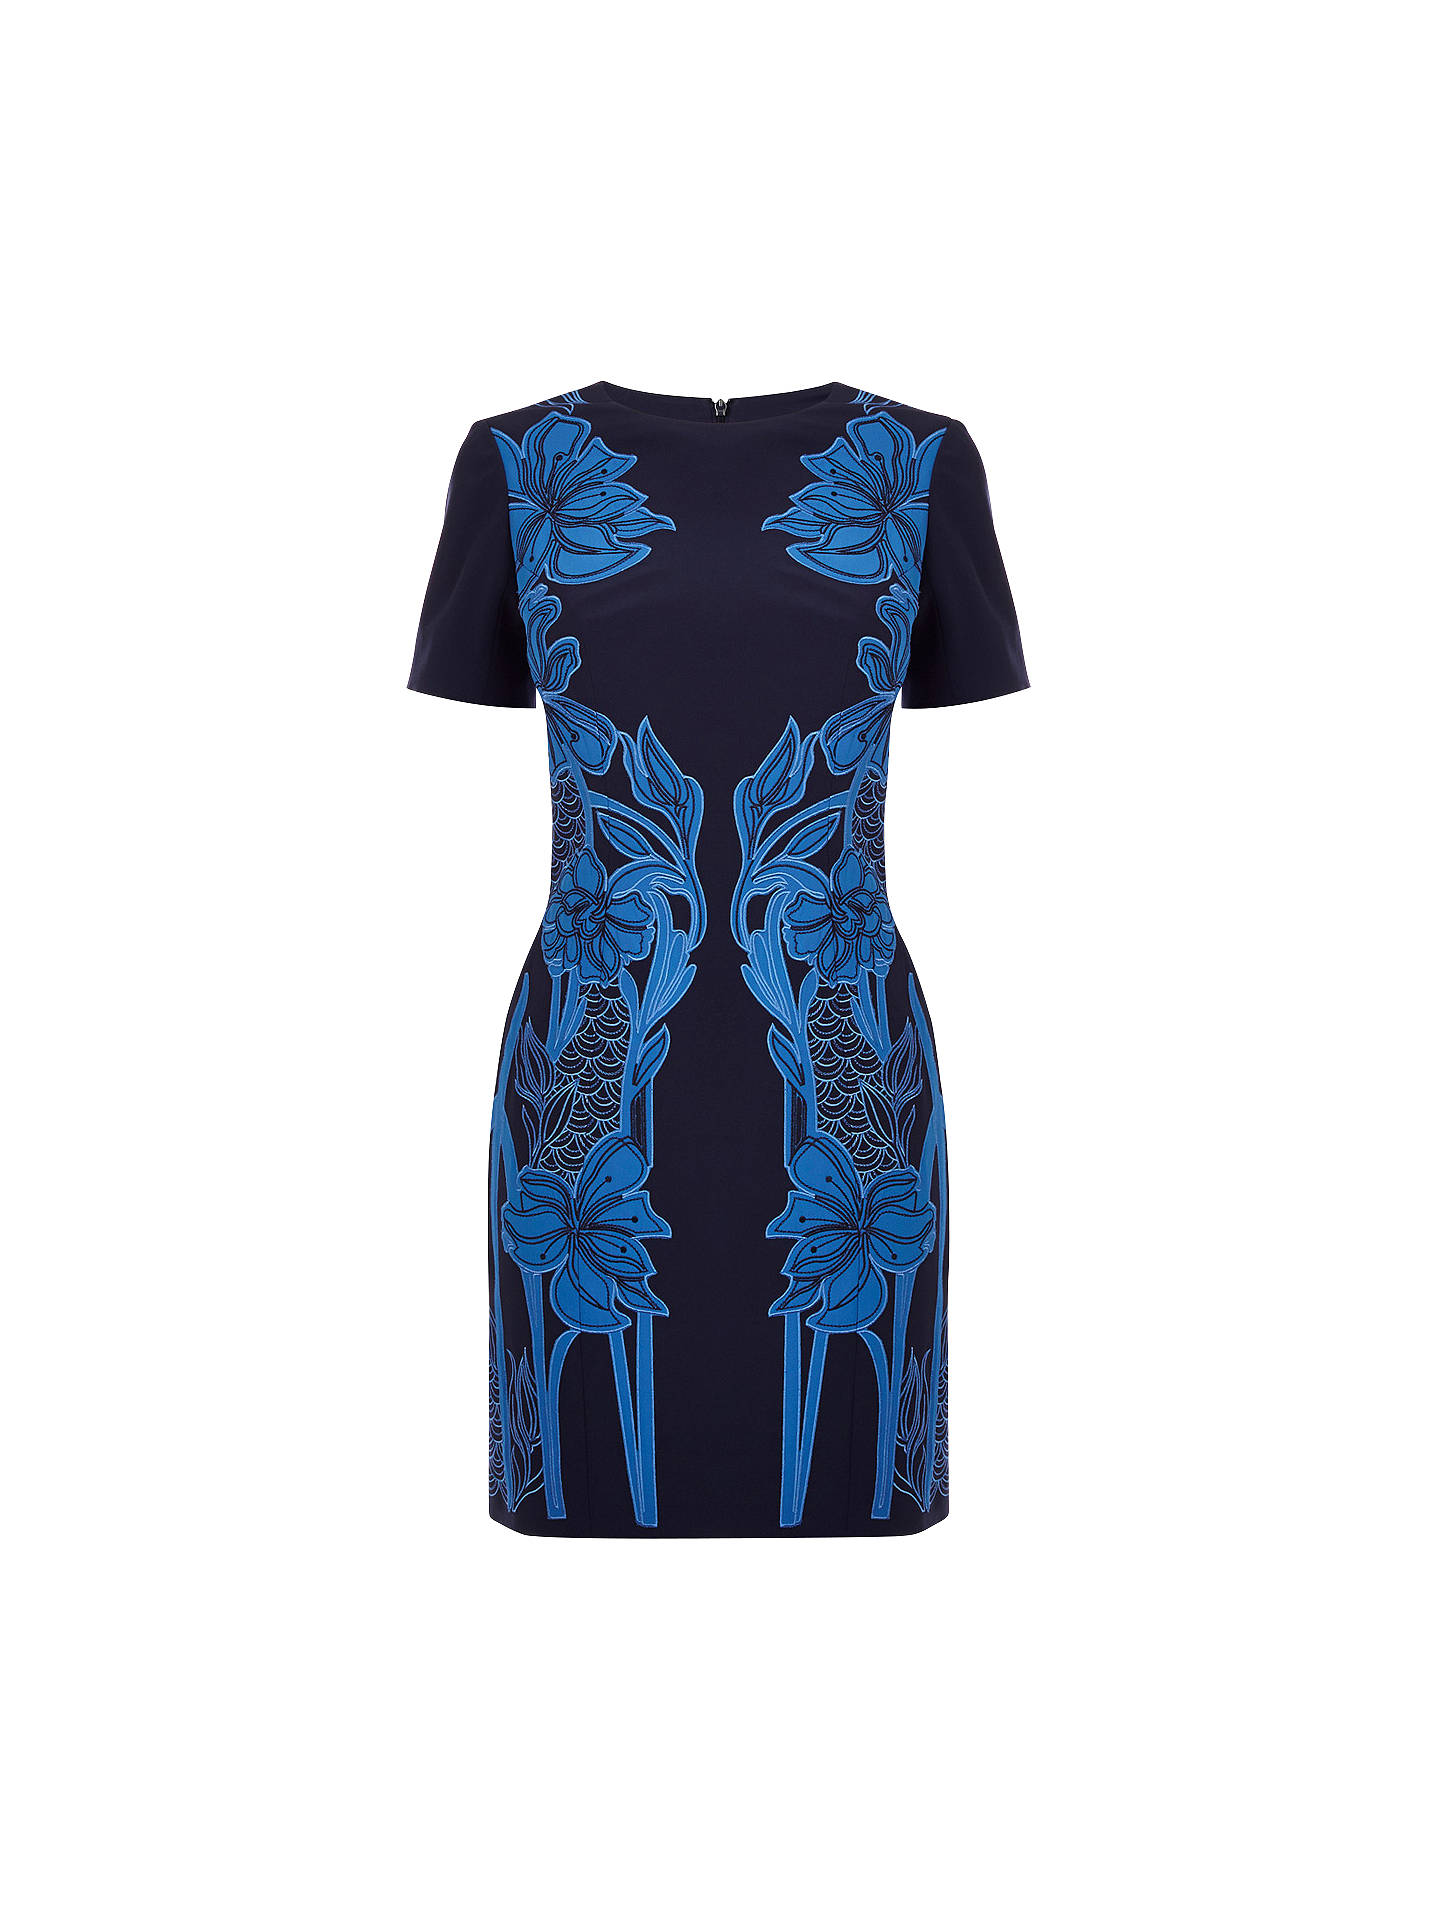 22107463a74 ... where to buy buykaren millen floral applique dress blue multi 6 online  at johnlewis d3e38 c70ca